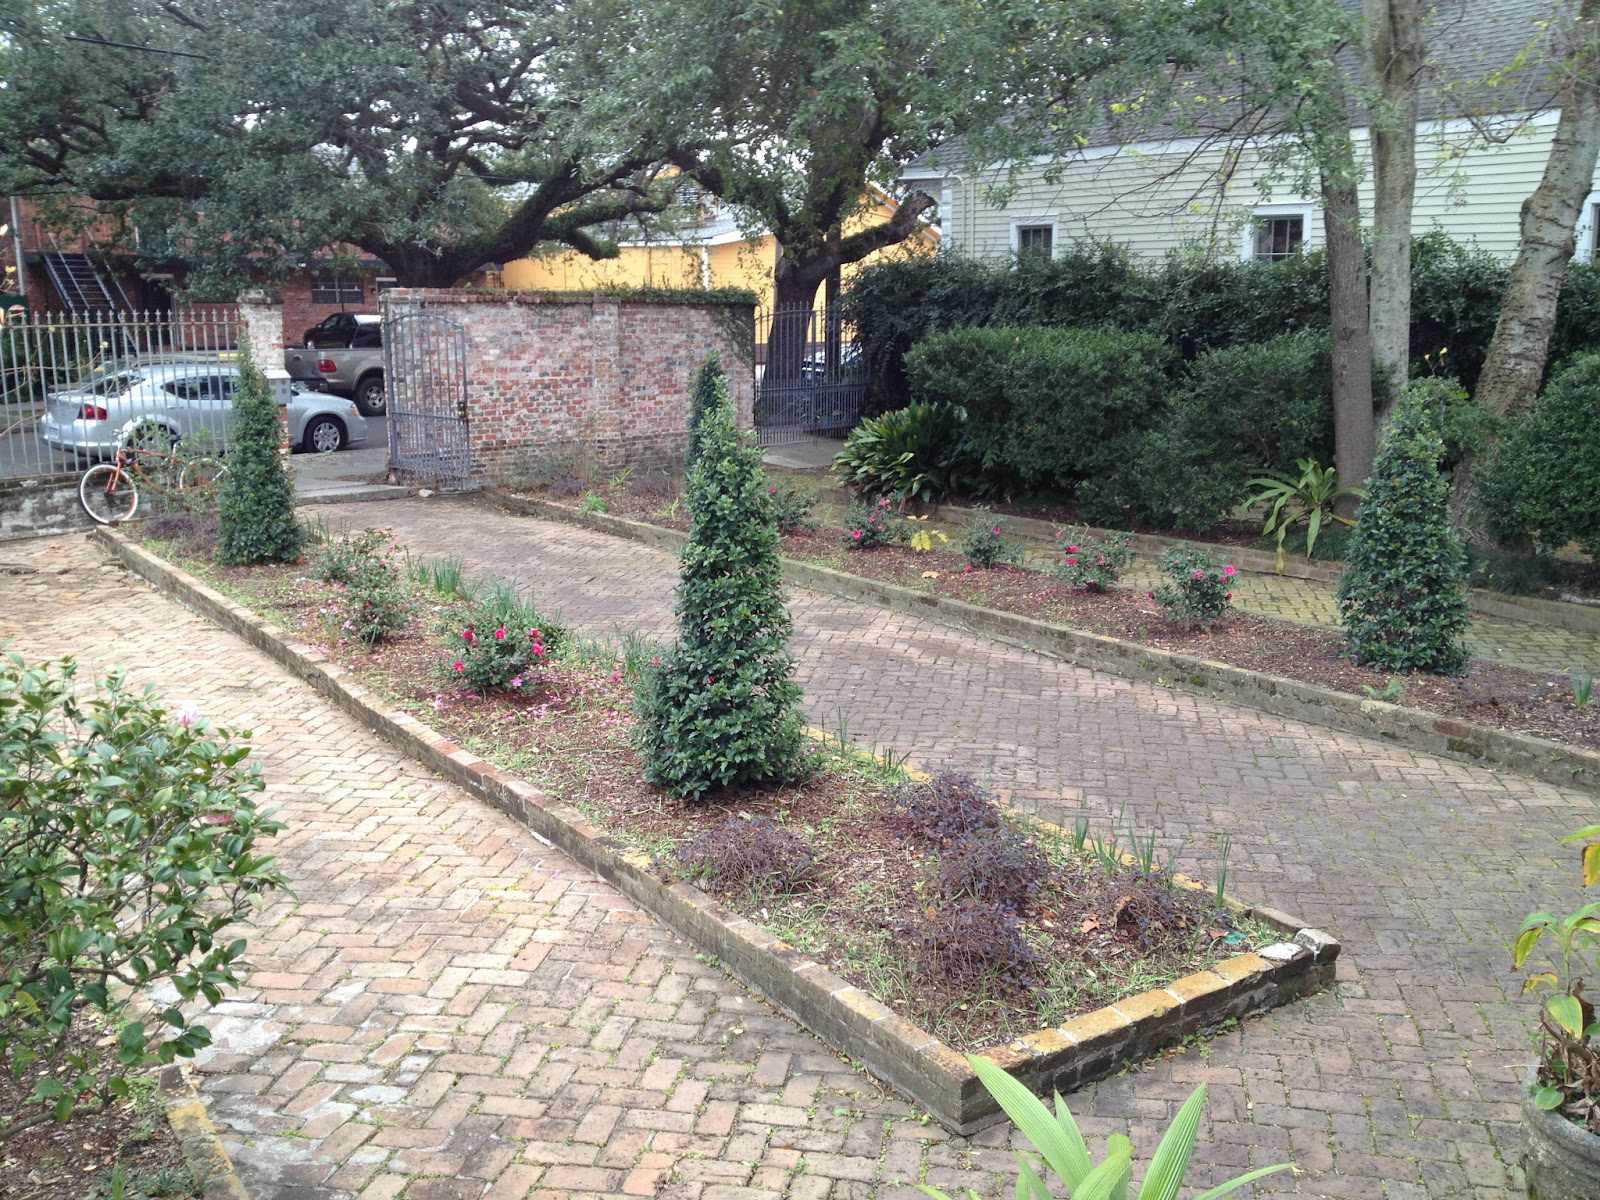 The site was once part of the plantation of Claude Treme where the first brickyard in New Orleans had been established in 1725 by the company of the Indies.